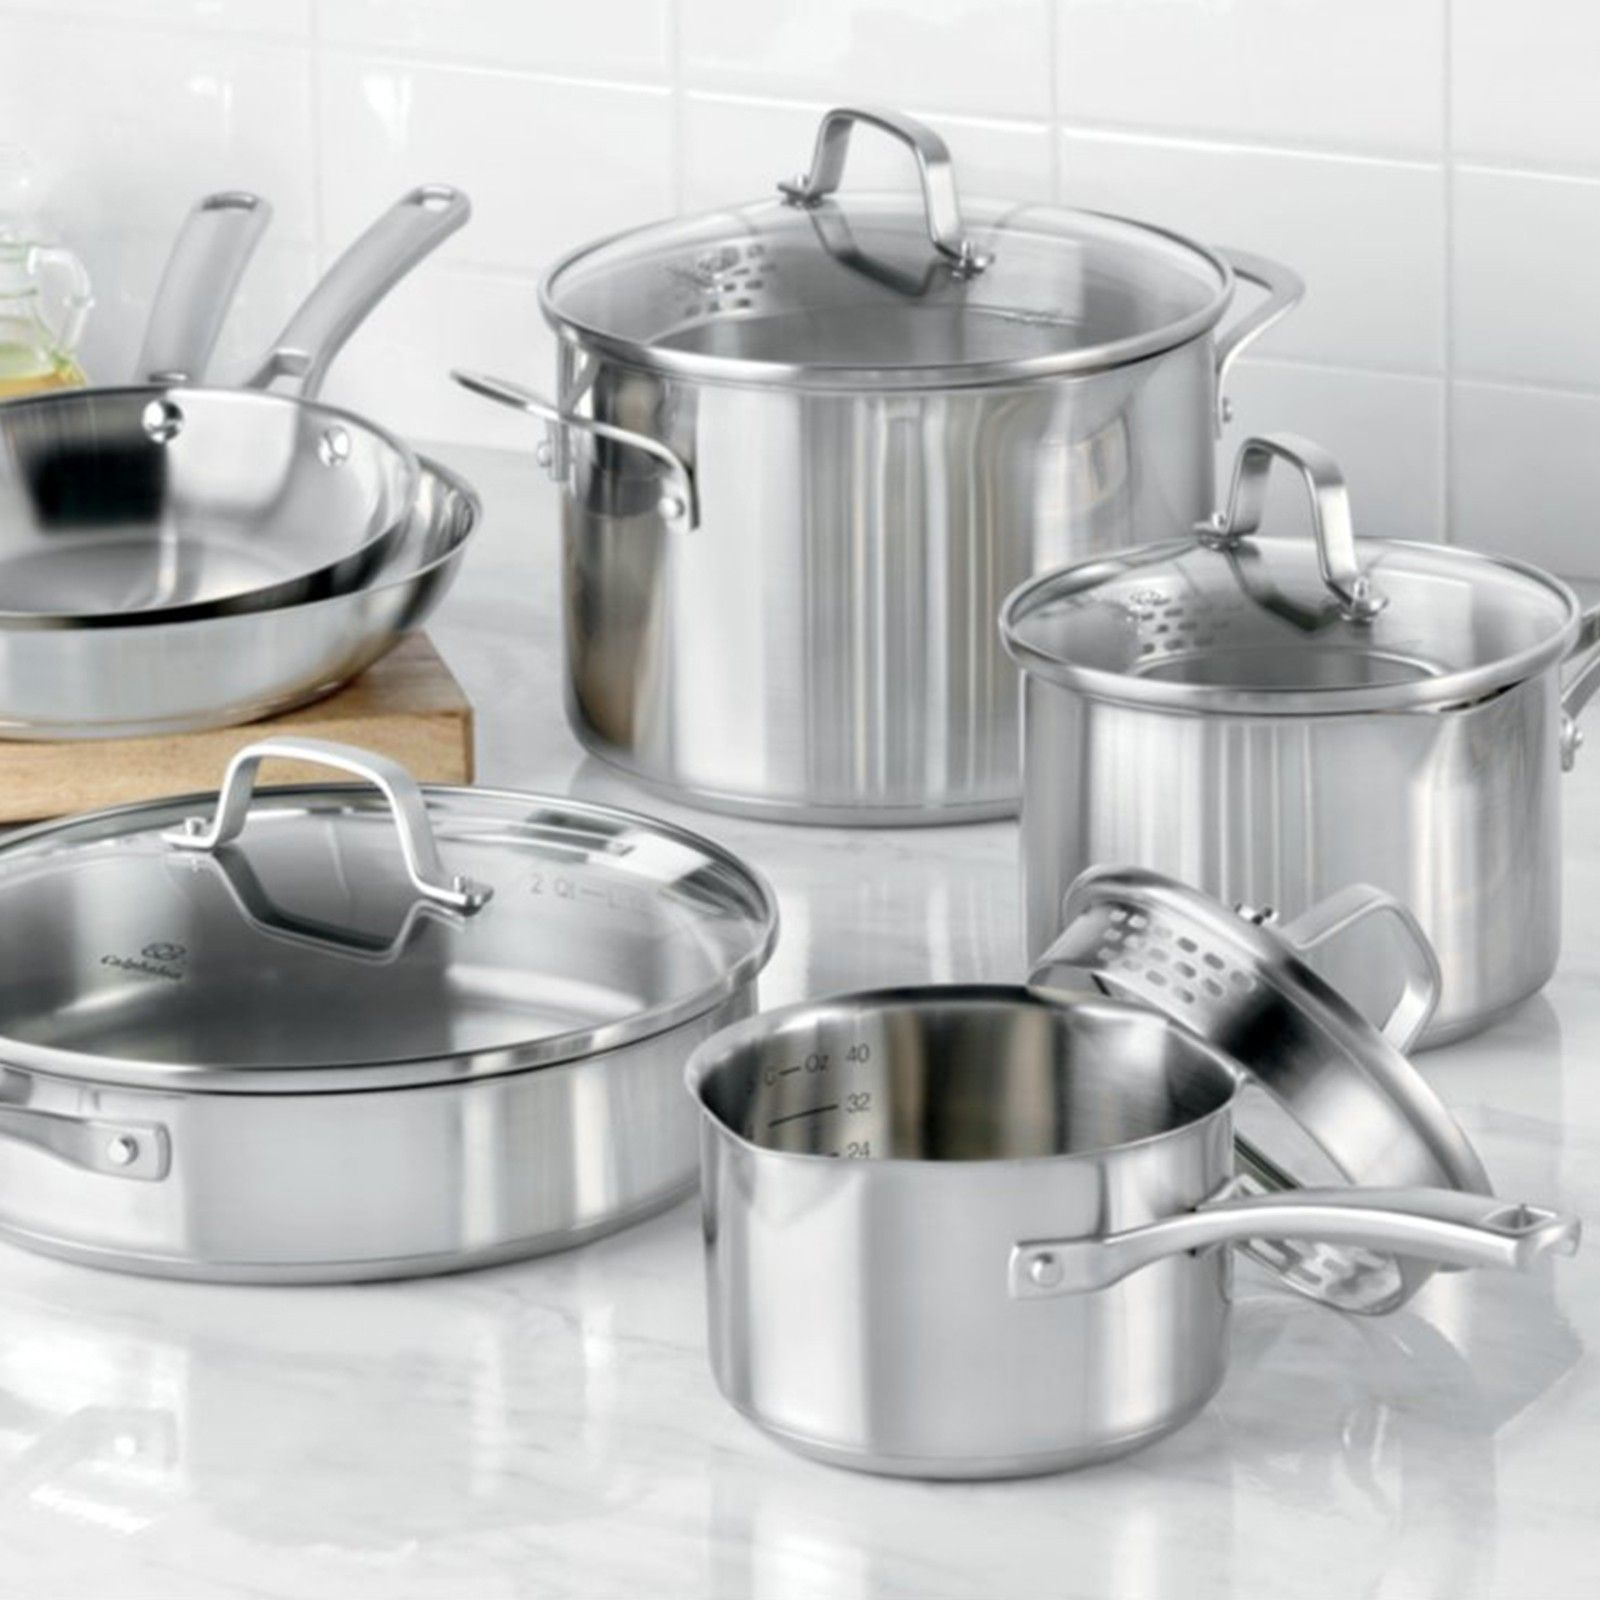 Classic Stainless 10 Piece Cookware Set By Calphalon Zola Cookware Set Cookware Set Stainless Steel Calphalon Cookware